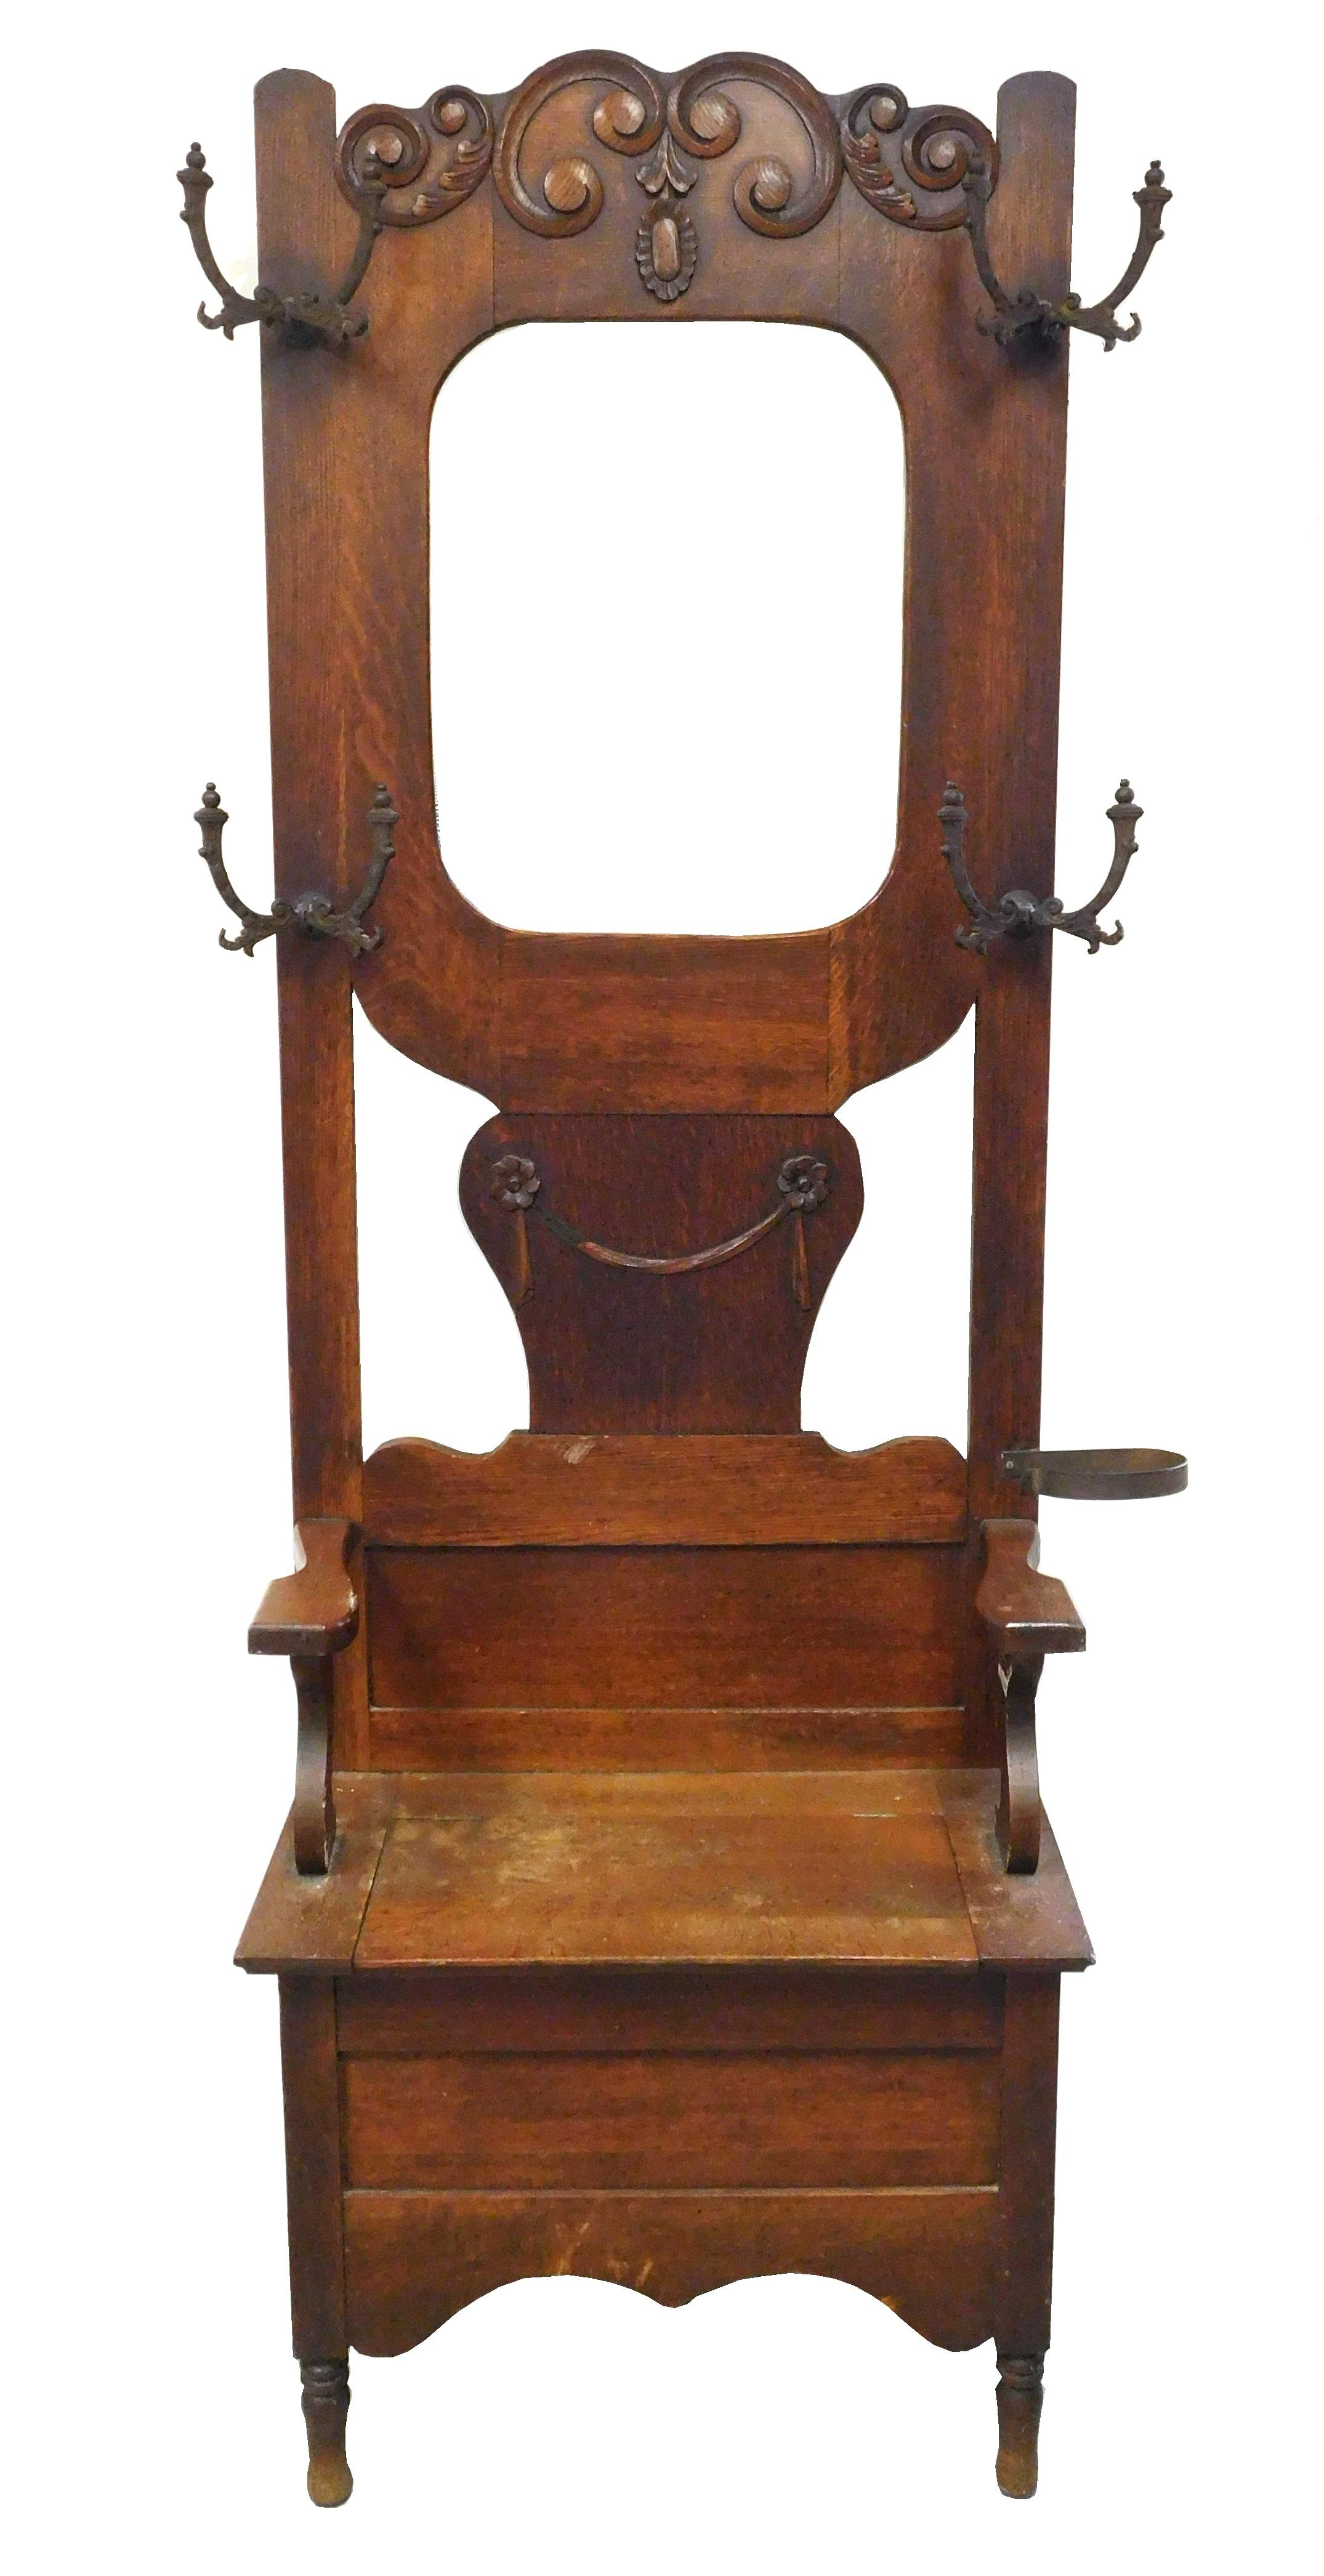 Victorian hall rack with lift seat, oak, oblong beveled mirror, scroll and swag carvings, wear consistent with age and use including...